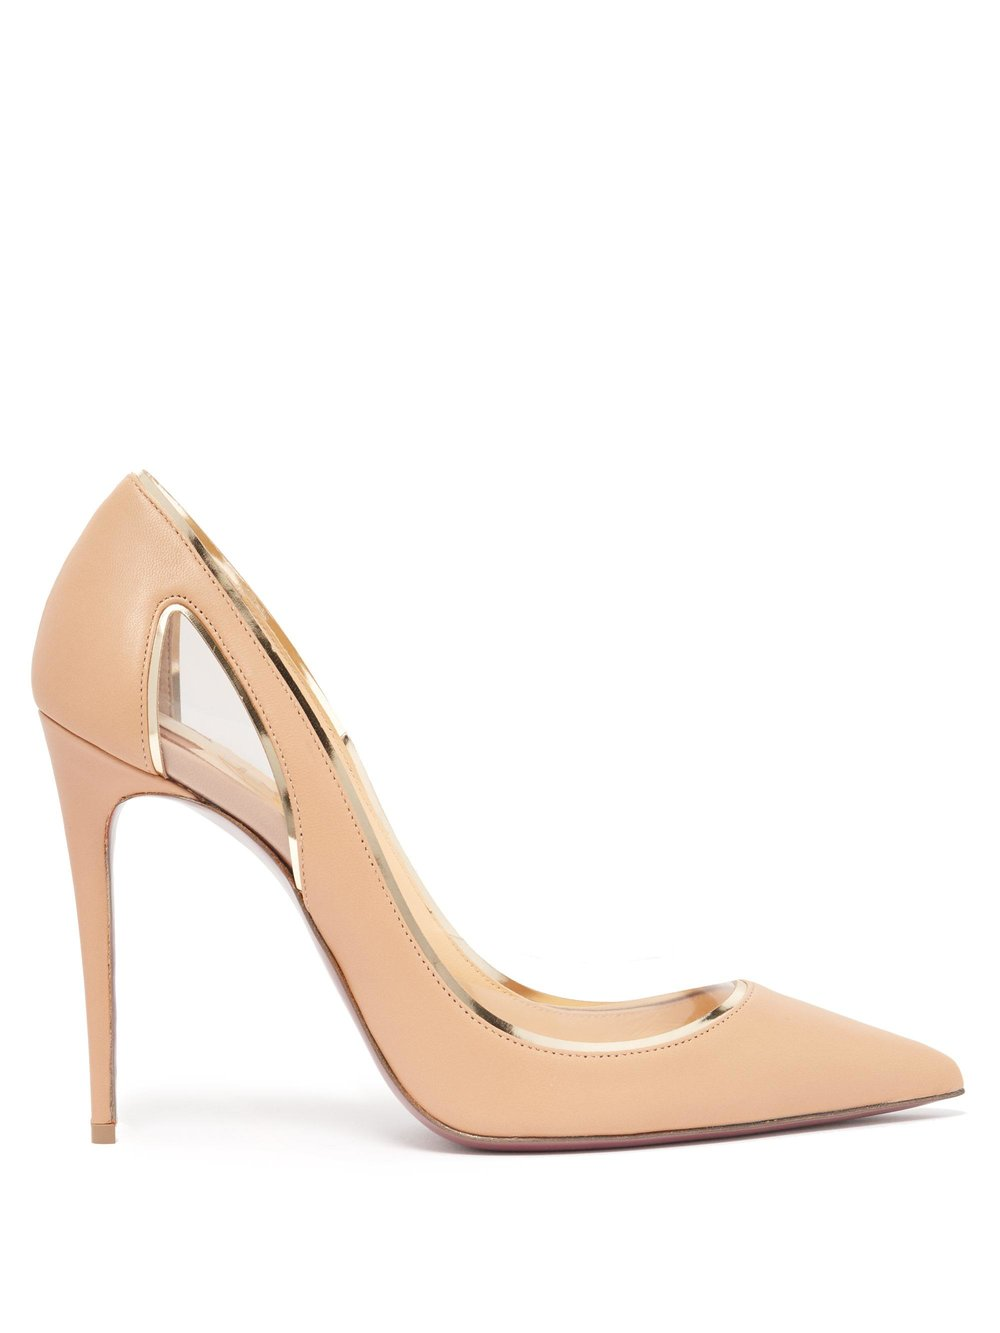 5. Christian Louboutin Cosmo 554 Tan Leather and Perspex Pumps $795 from www.matchesfashion.com